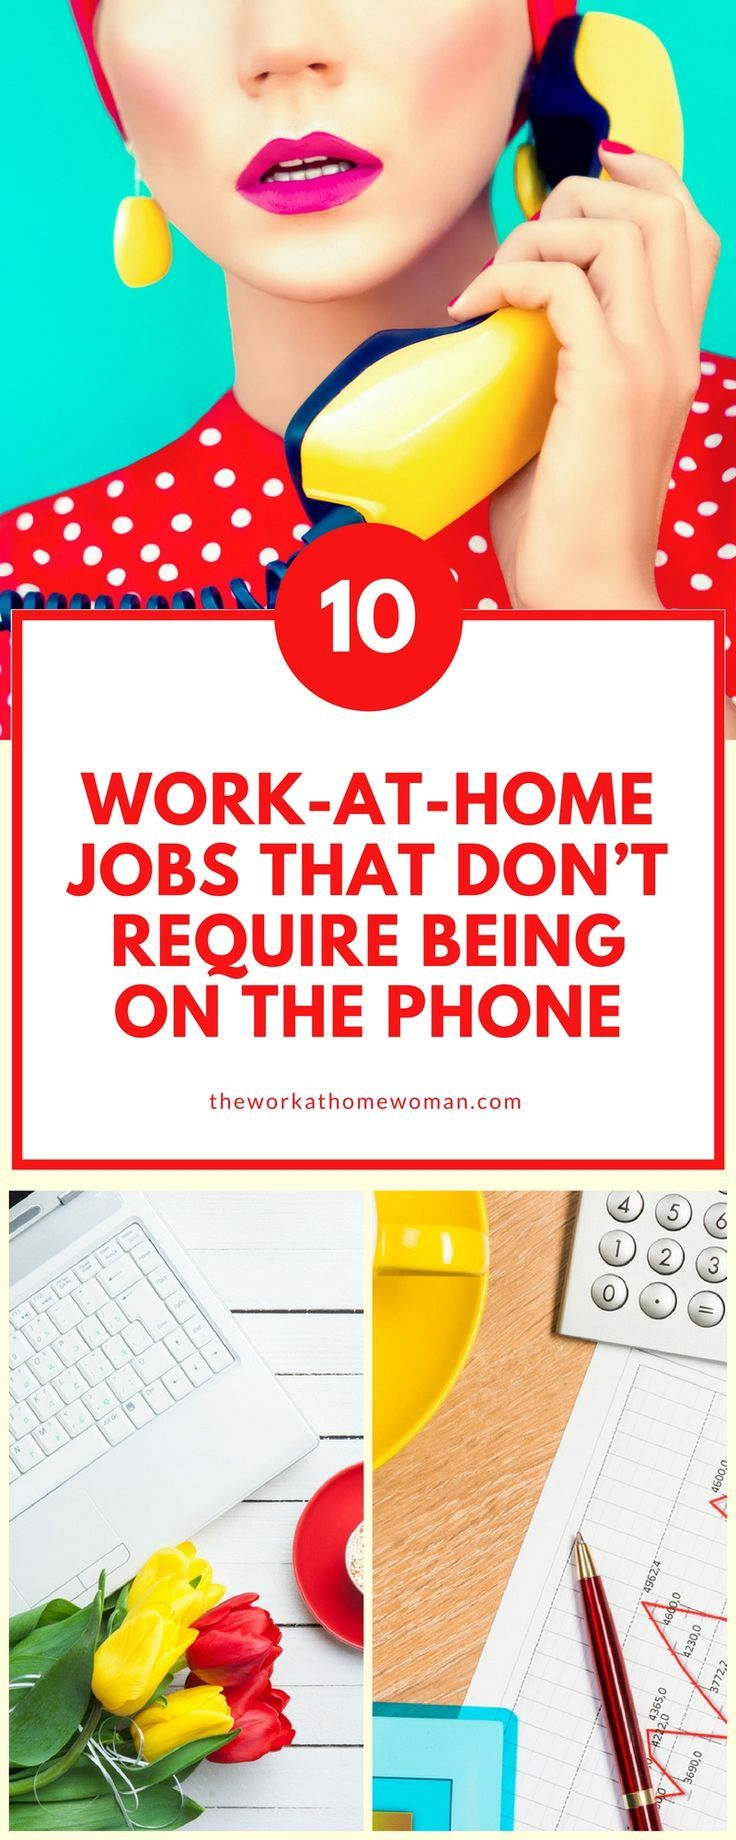 24 WorkatHome Jobs That Don't Require Being on the Phone